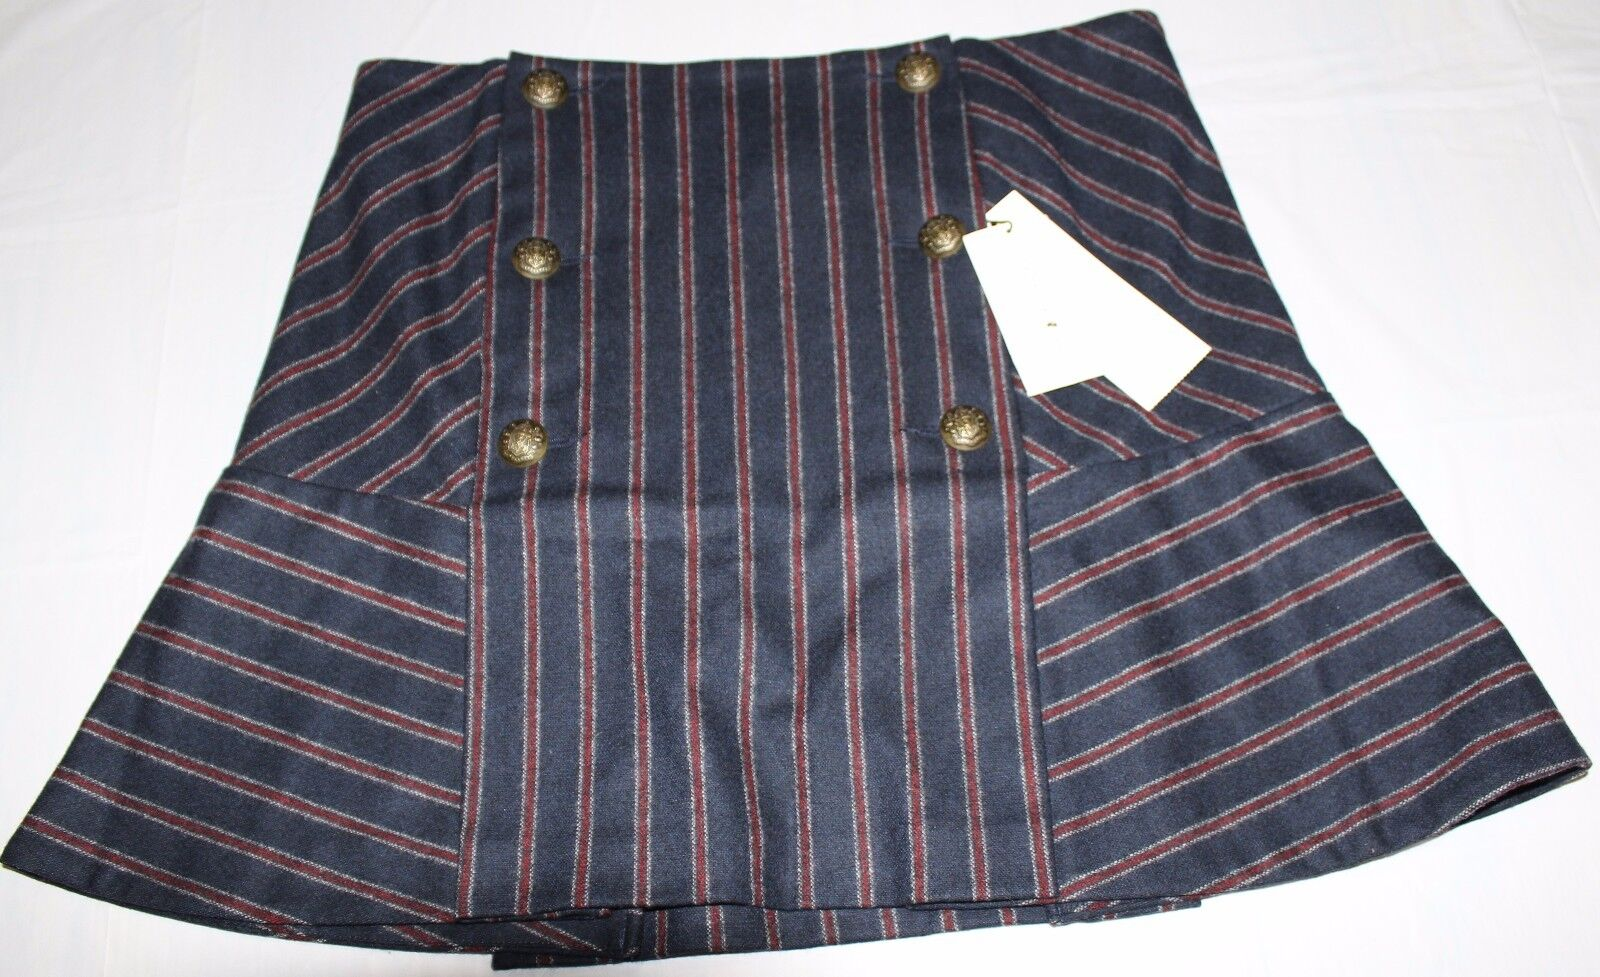 395 VERONICA BEARD NAVY RED FORGE BUTTON SKIRT US 8